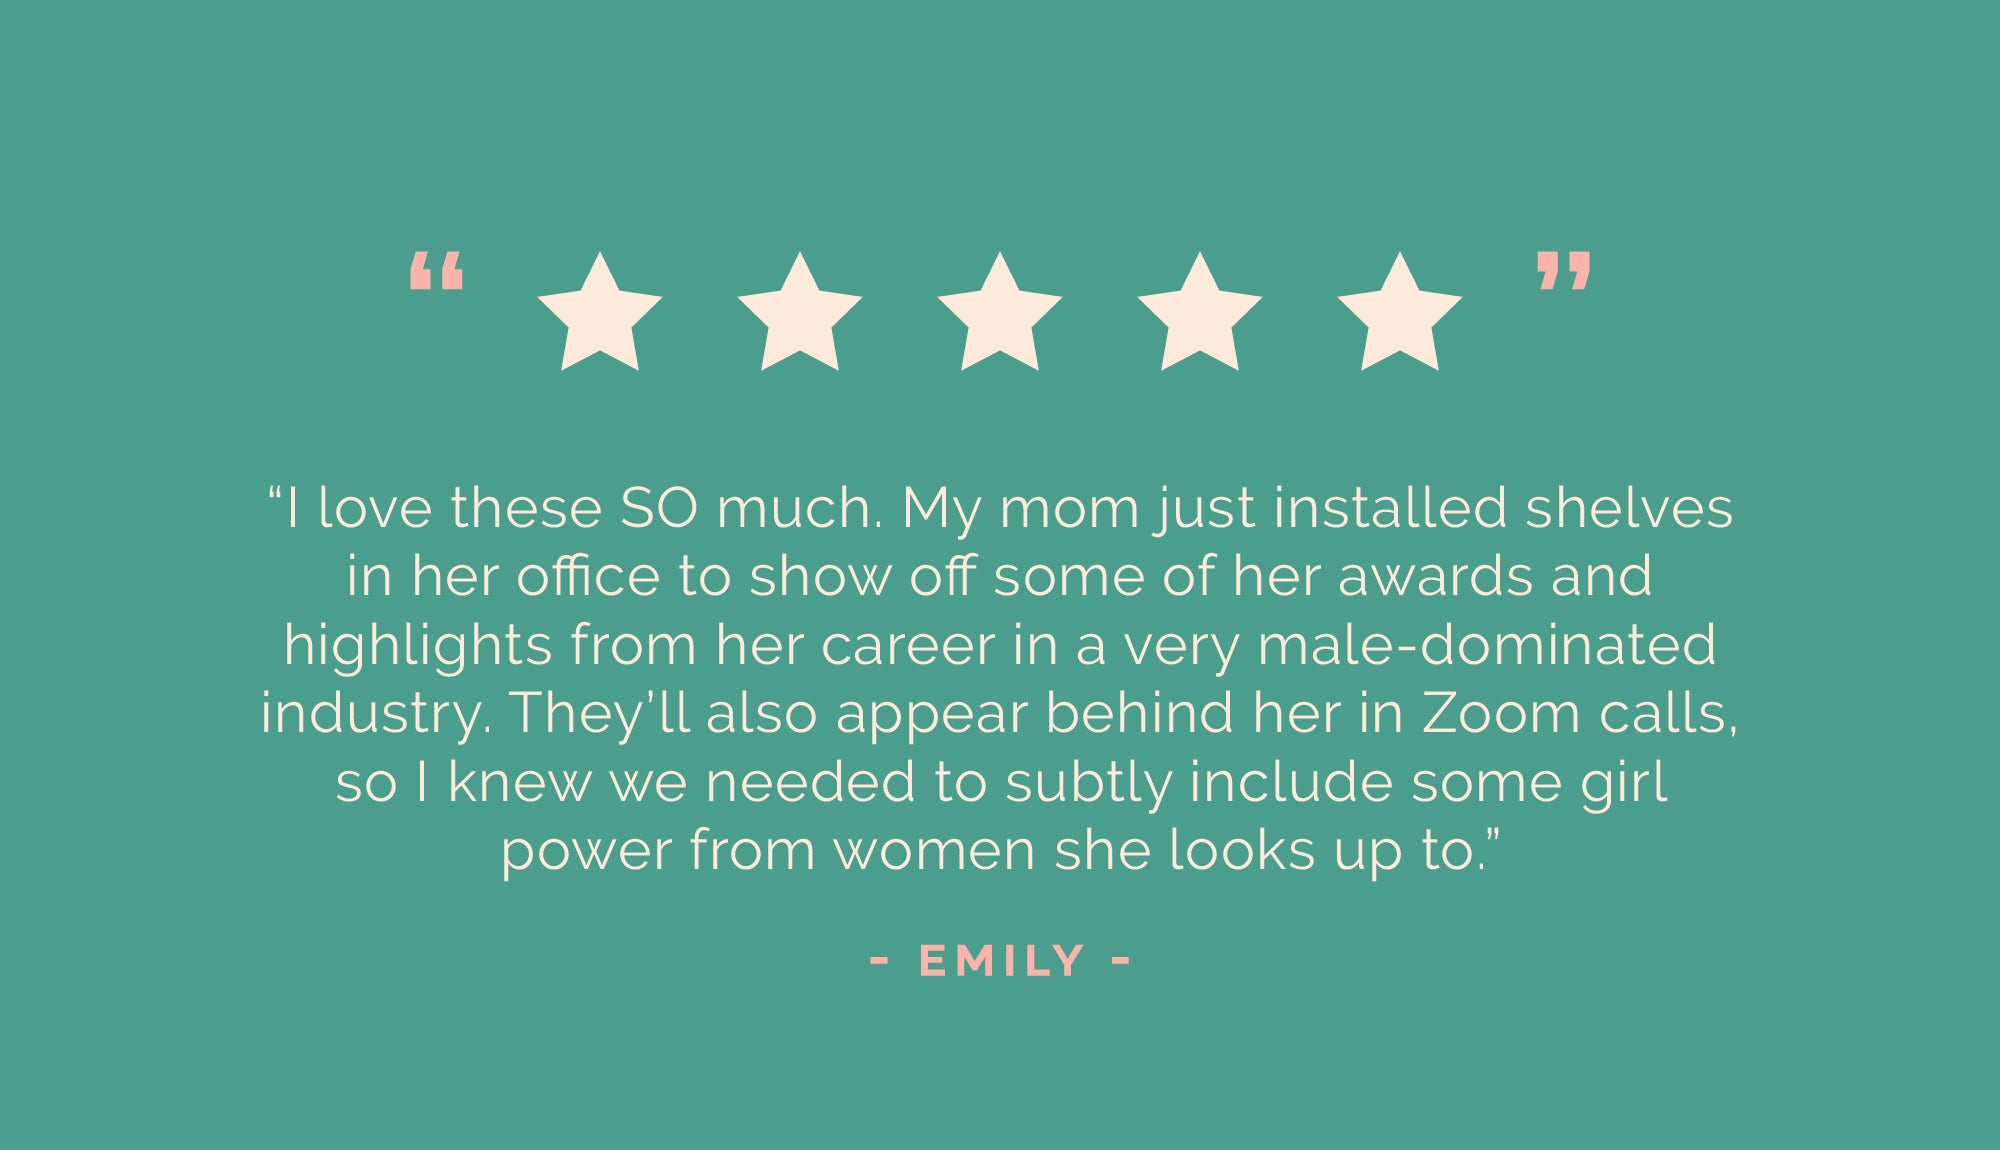 5 star review for ARCHd build your own feminist bookend sets